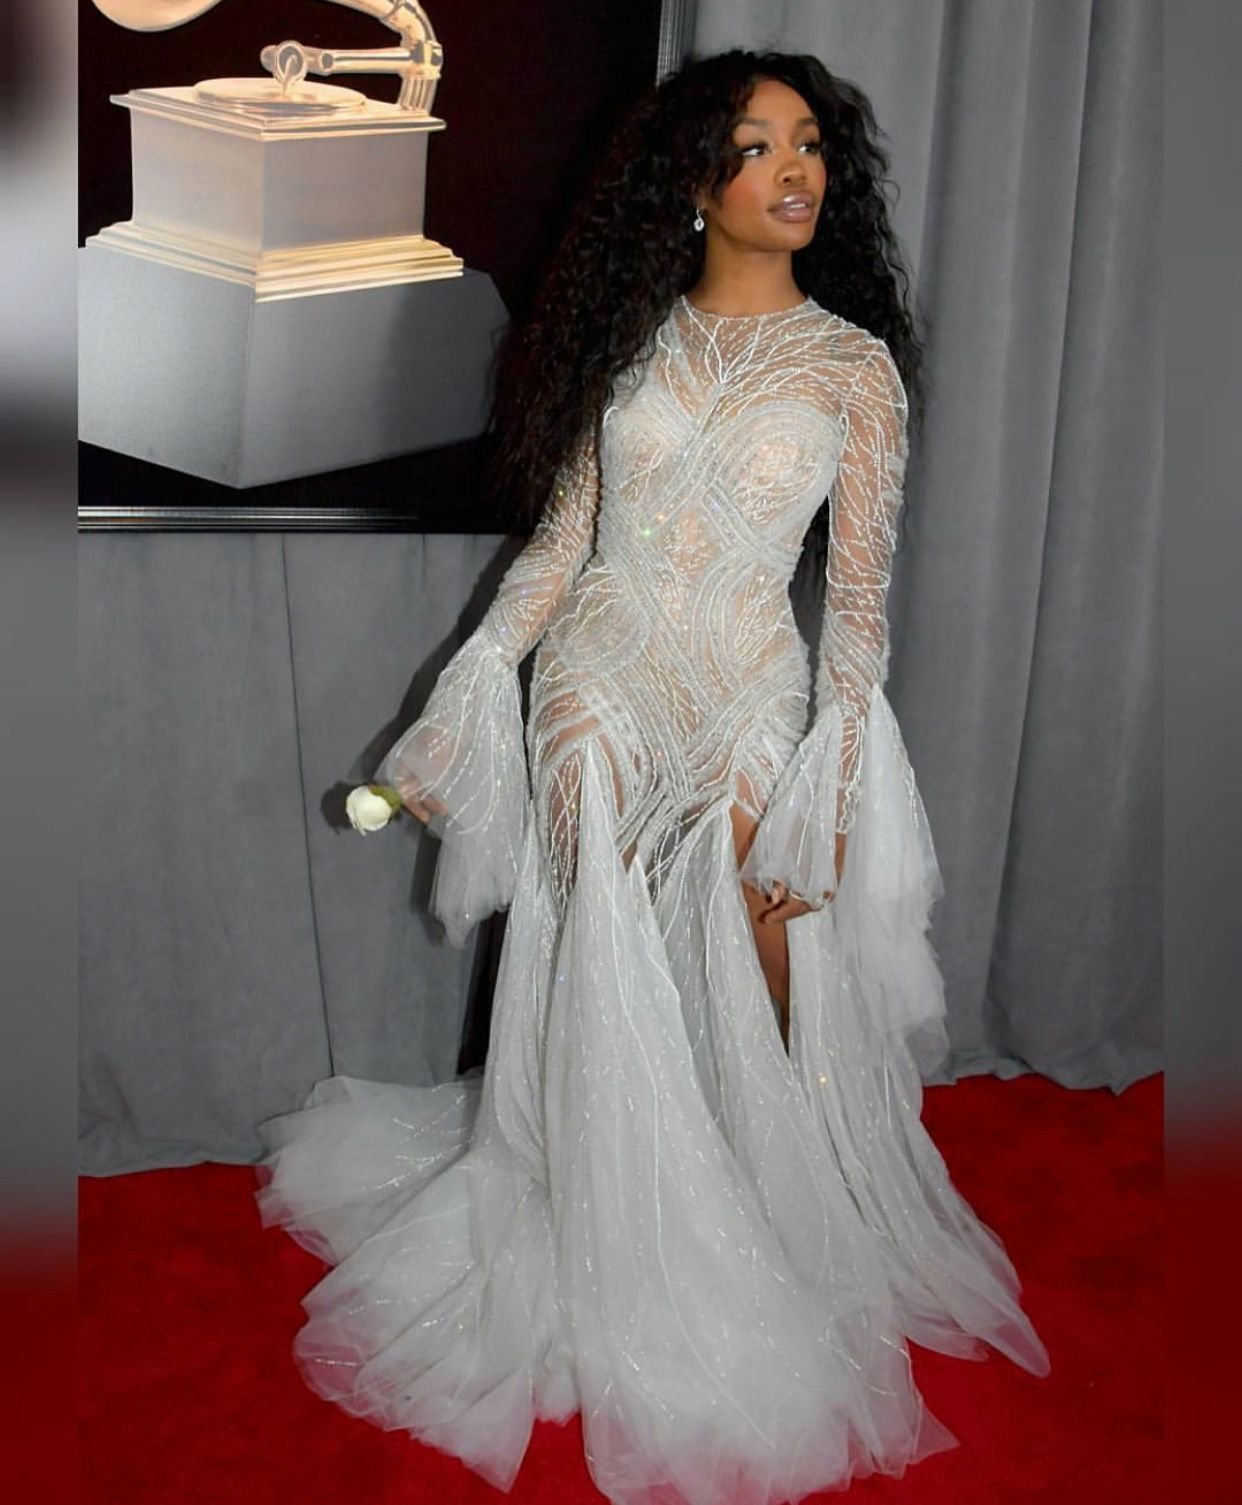 Sza theweekend even though this is not a prom dress uu she was at